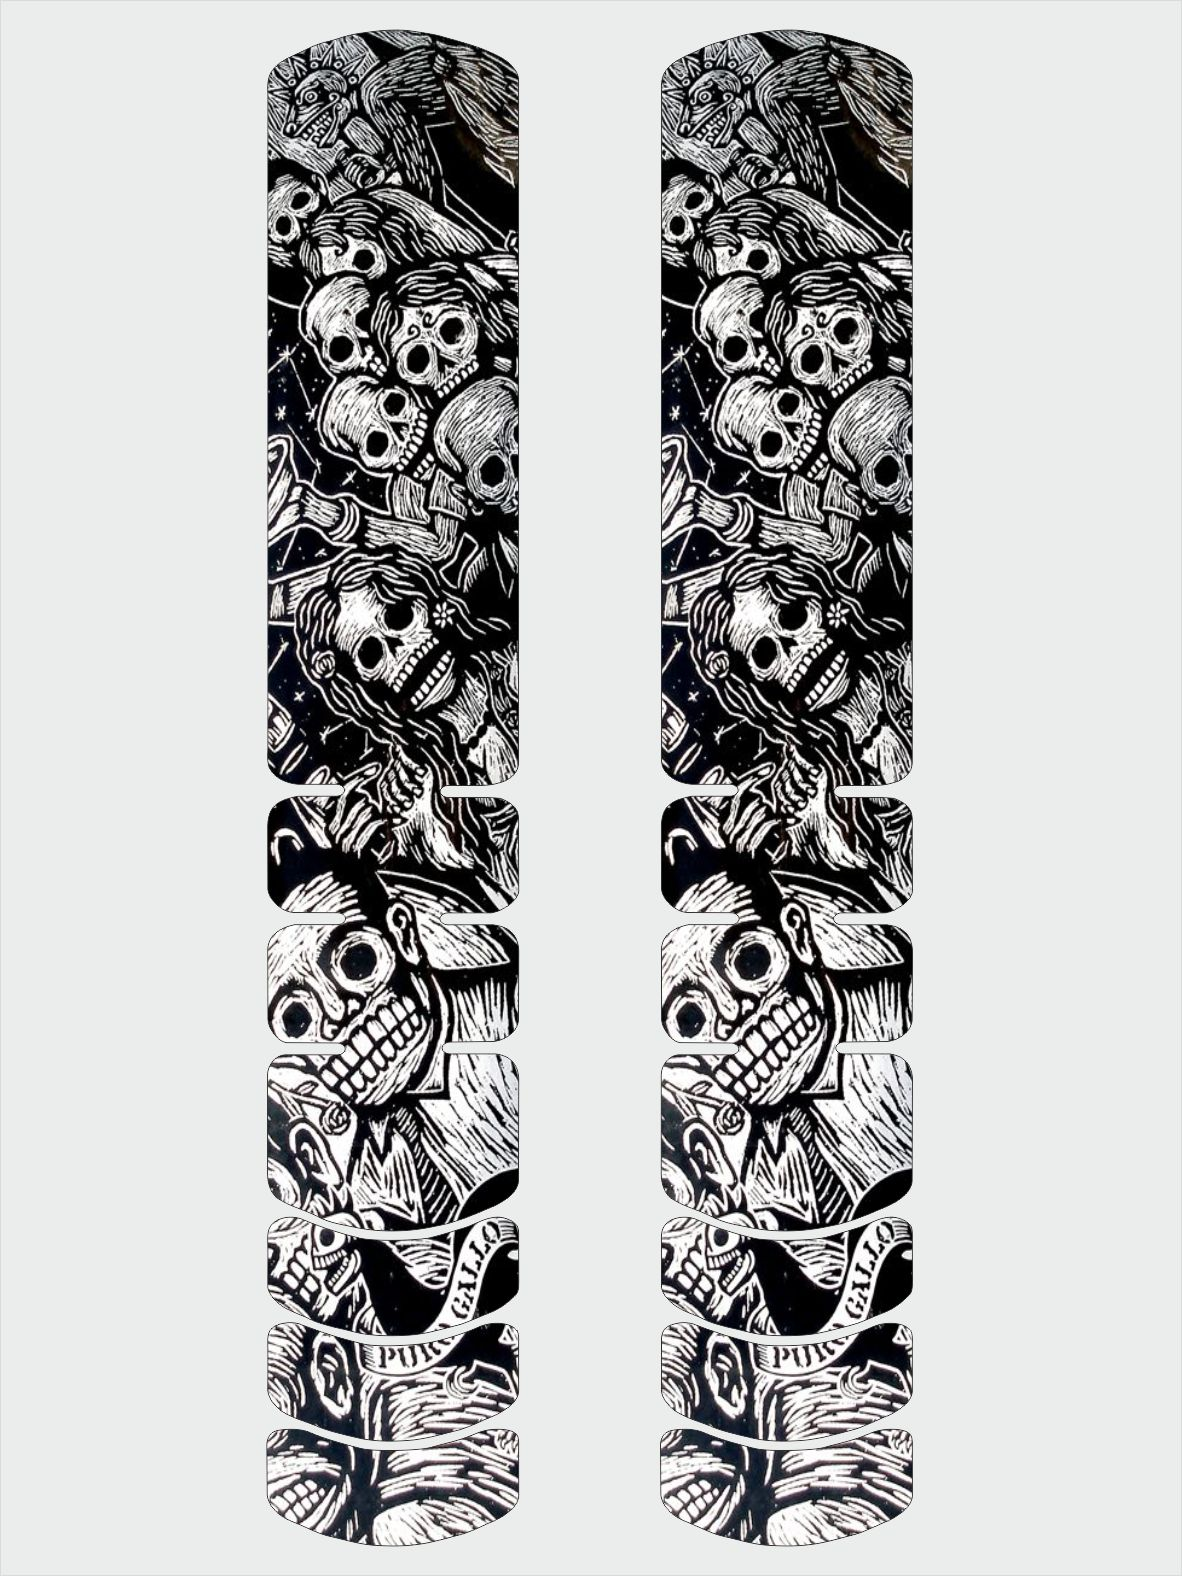 Frame Protector Illustrated Adhesive Sticker Large Bicycle Decal Skull 1 Theme